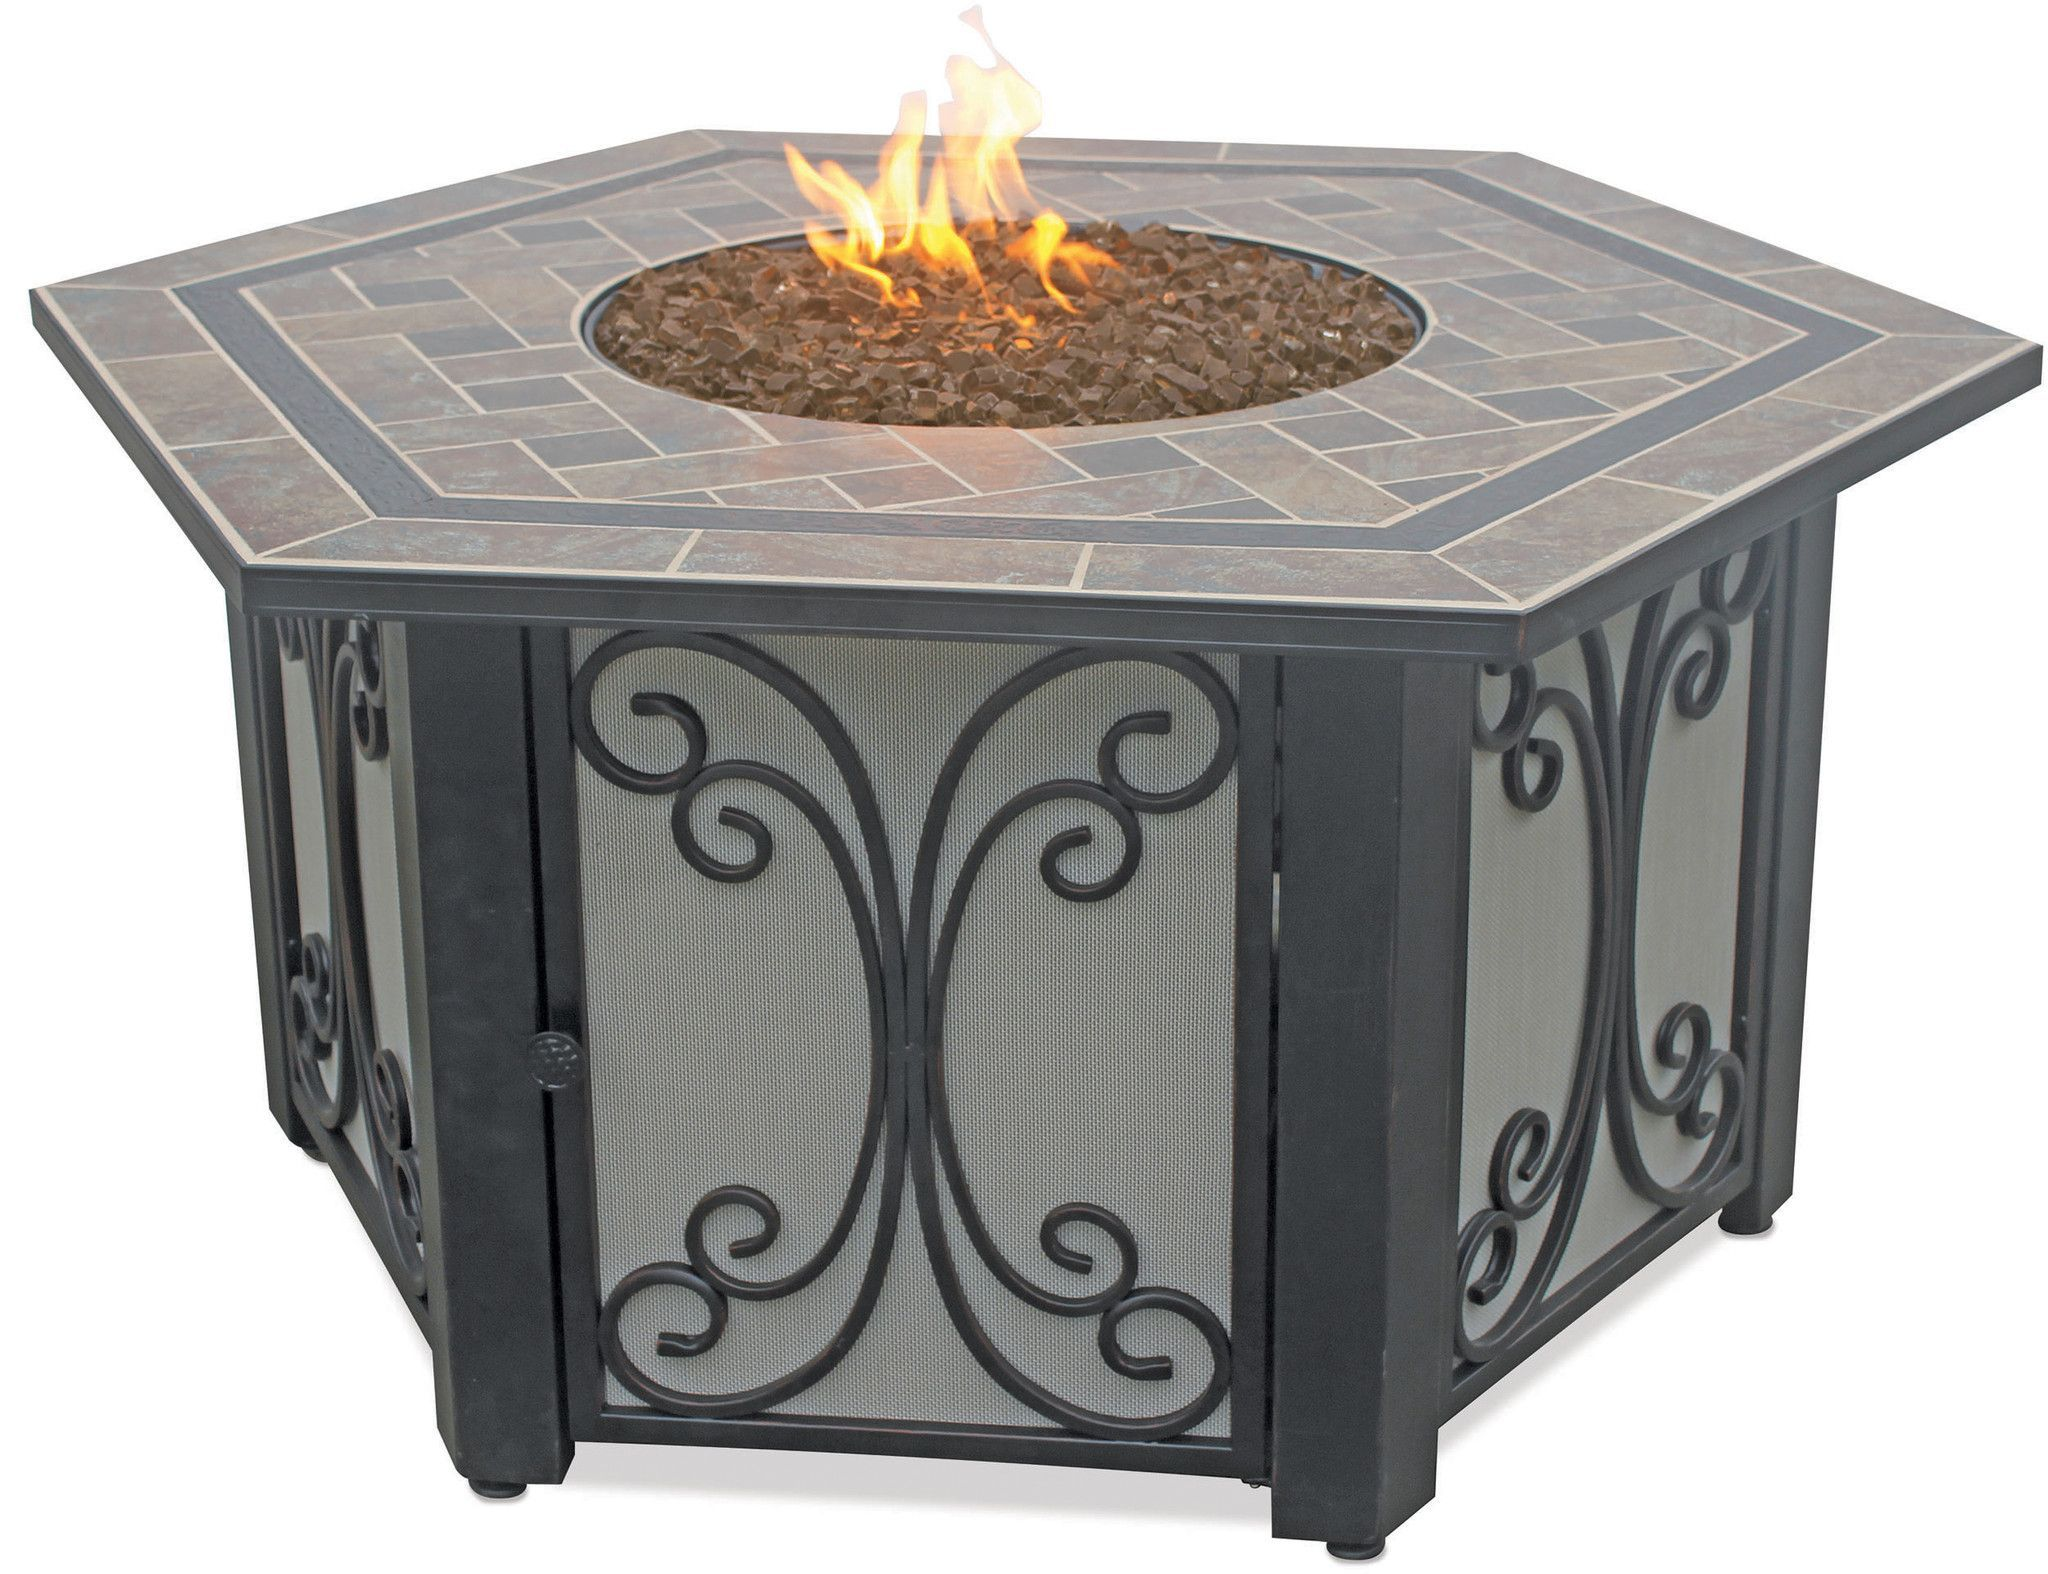 Uniflame Slate Tile Hexagon Propane Gas Fire Pit Home Amp Garden